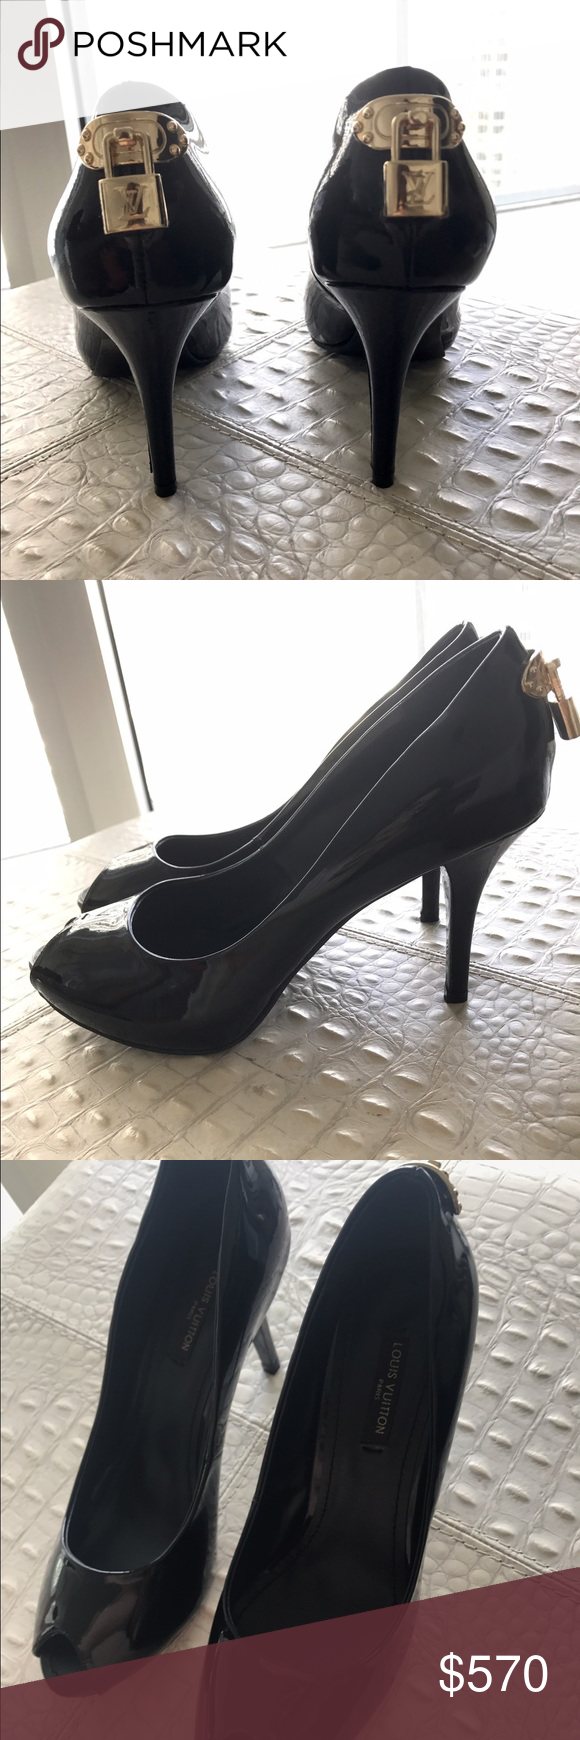 0657b80936 Louis Vuitton black oh really! Heels size 38 Blackleather Louis Vuitton Oh  Really! Black leather peep-toe pumps with gold-tone lock adornment on back.